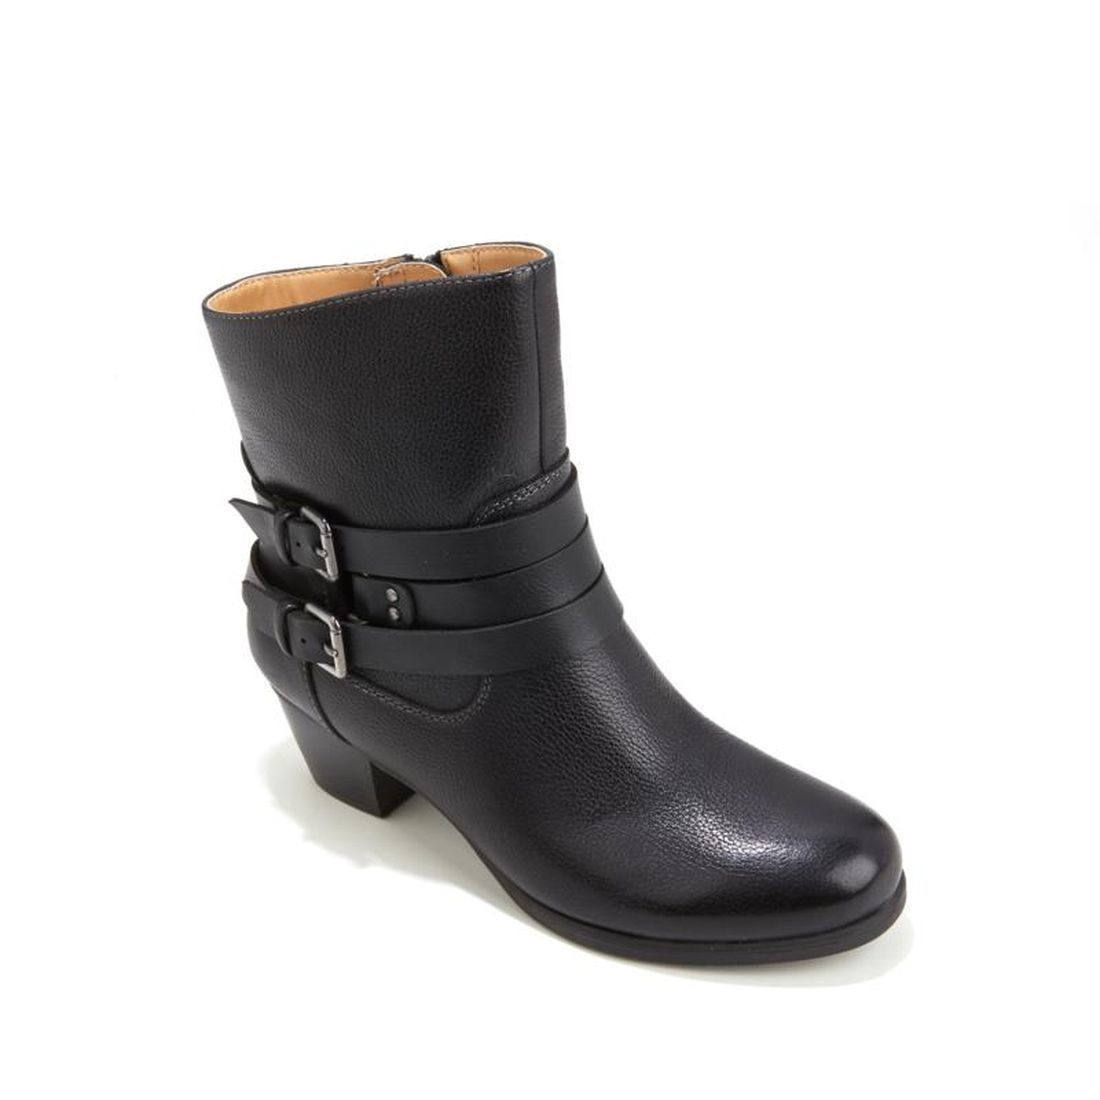 Naturalizer Katrina Leather Buckle Bootie 498-079 by